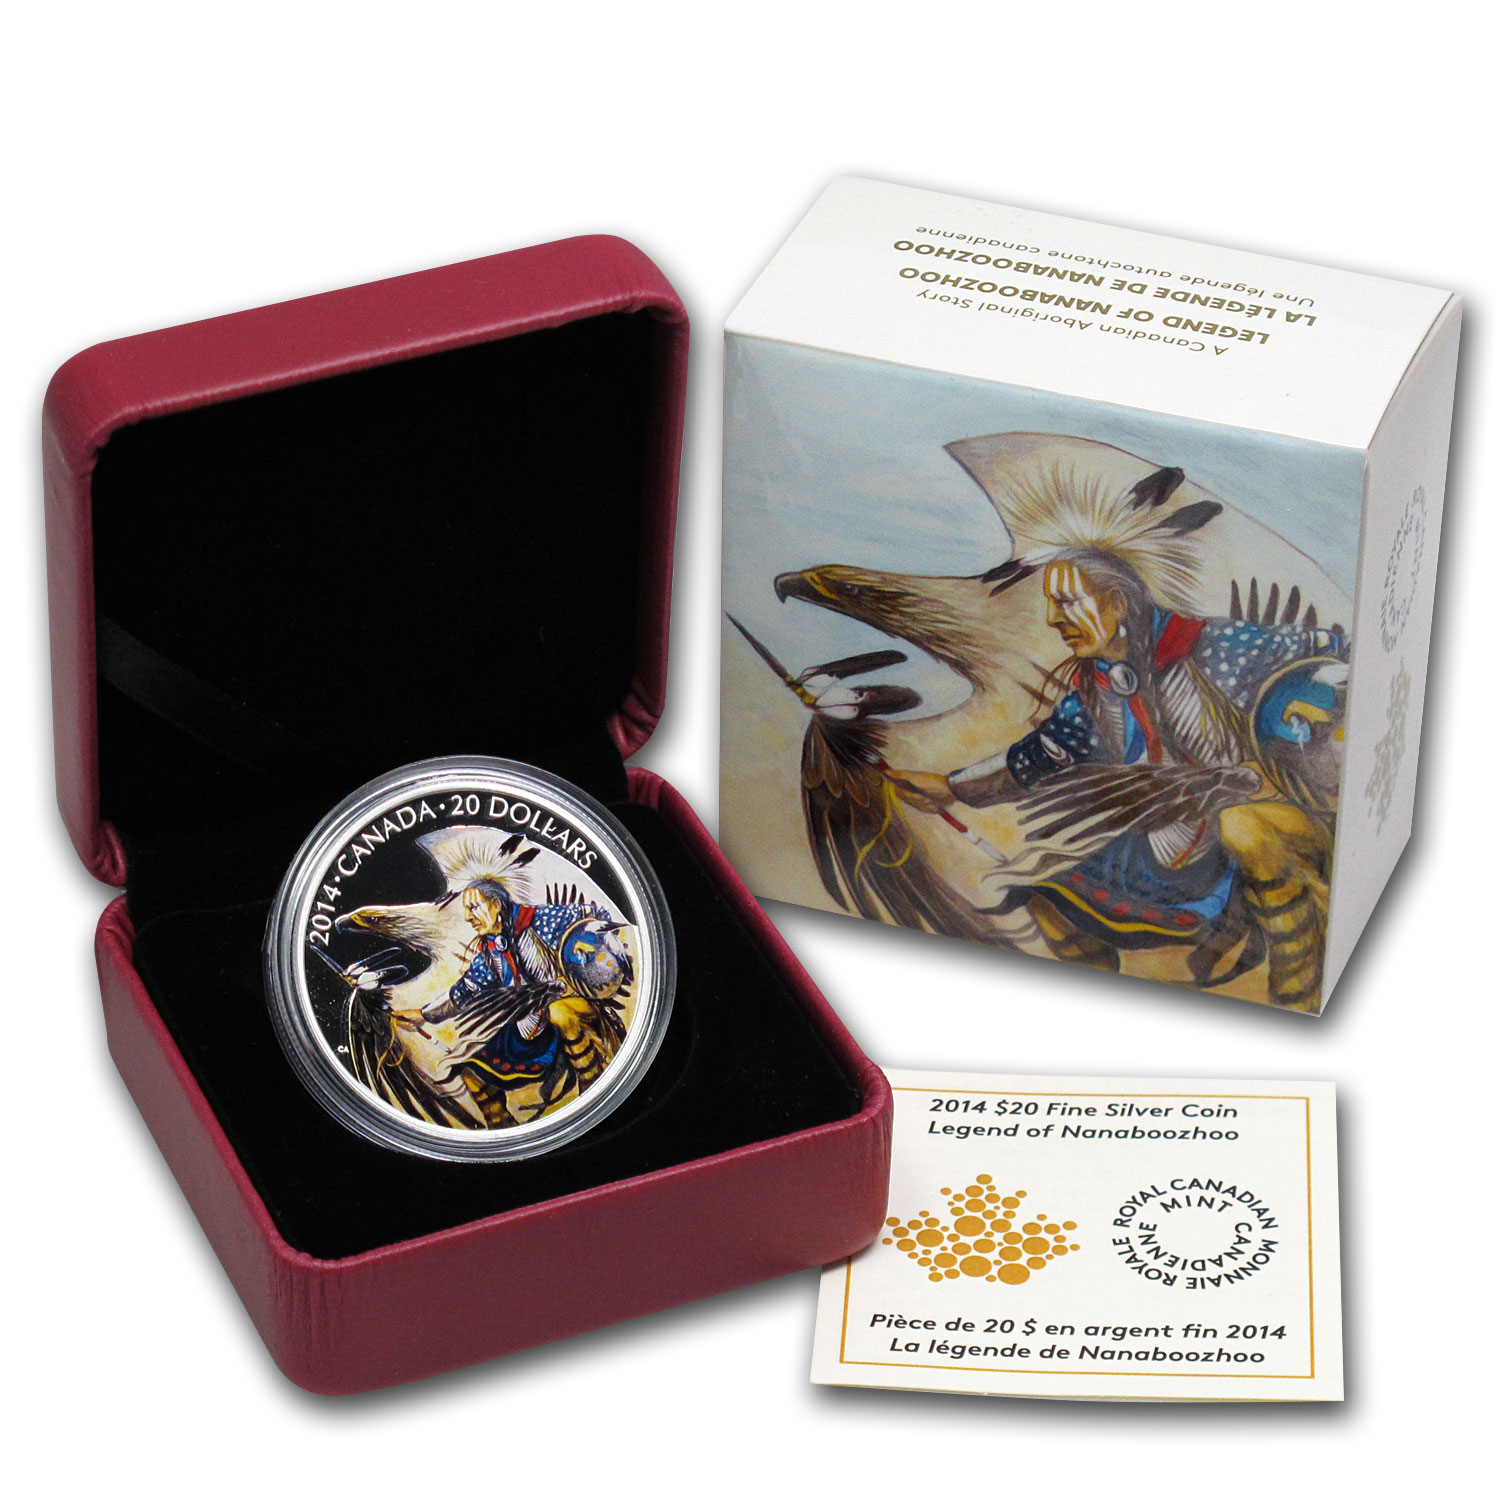 2014 Canada 1 oz Silver $20 Legend of Nanaboozhoo (W/Box & COA)